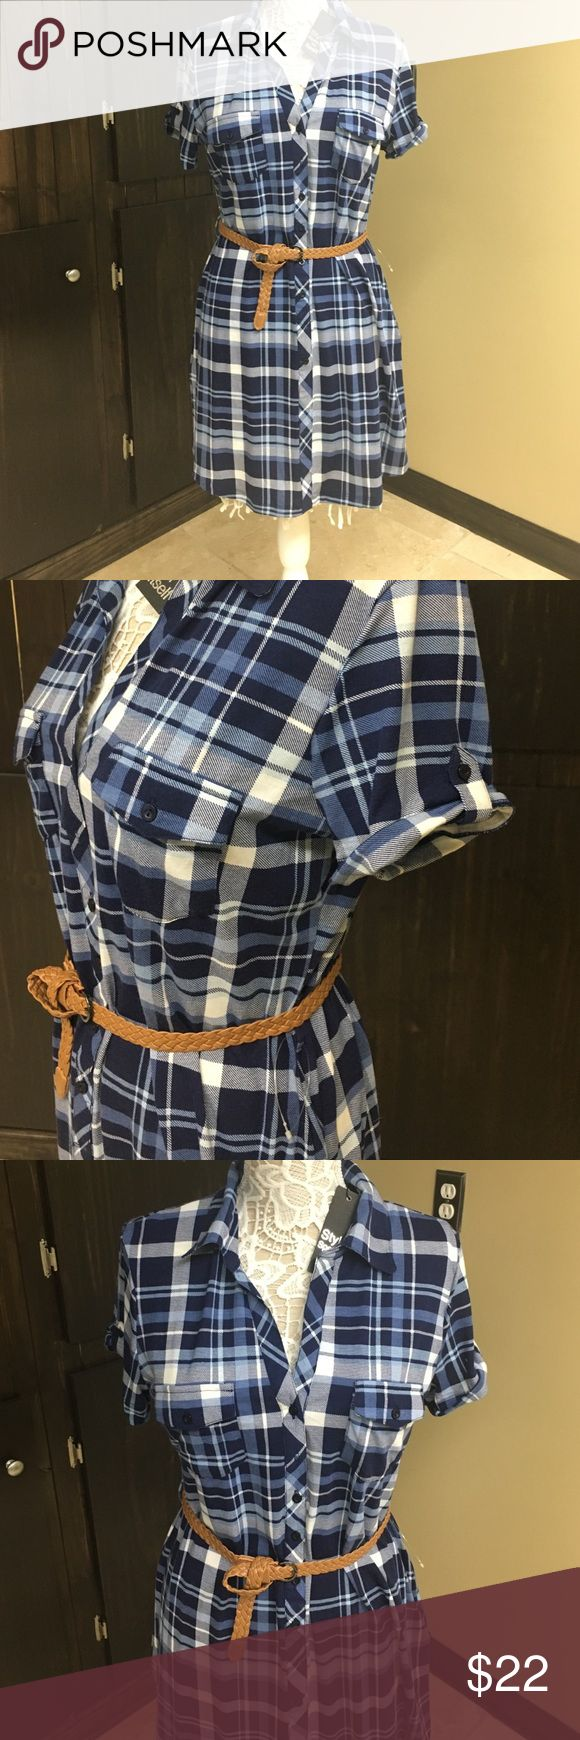 Brand new belted plaid shirt dress! Belt included Super soft and cozy belted shirt dress! Size XL junior could fit a medium adult! Dresses Midi